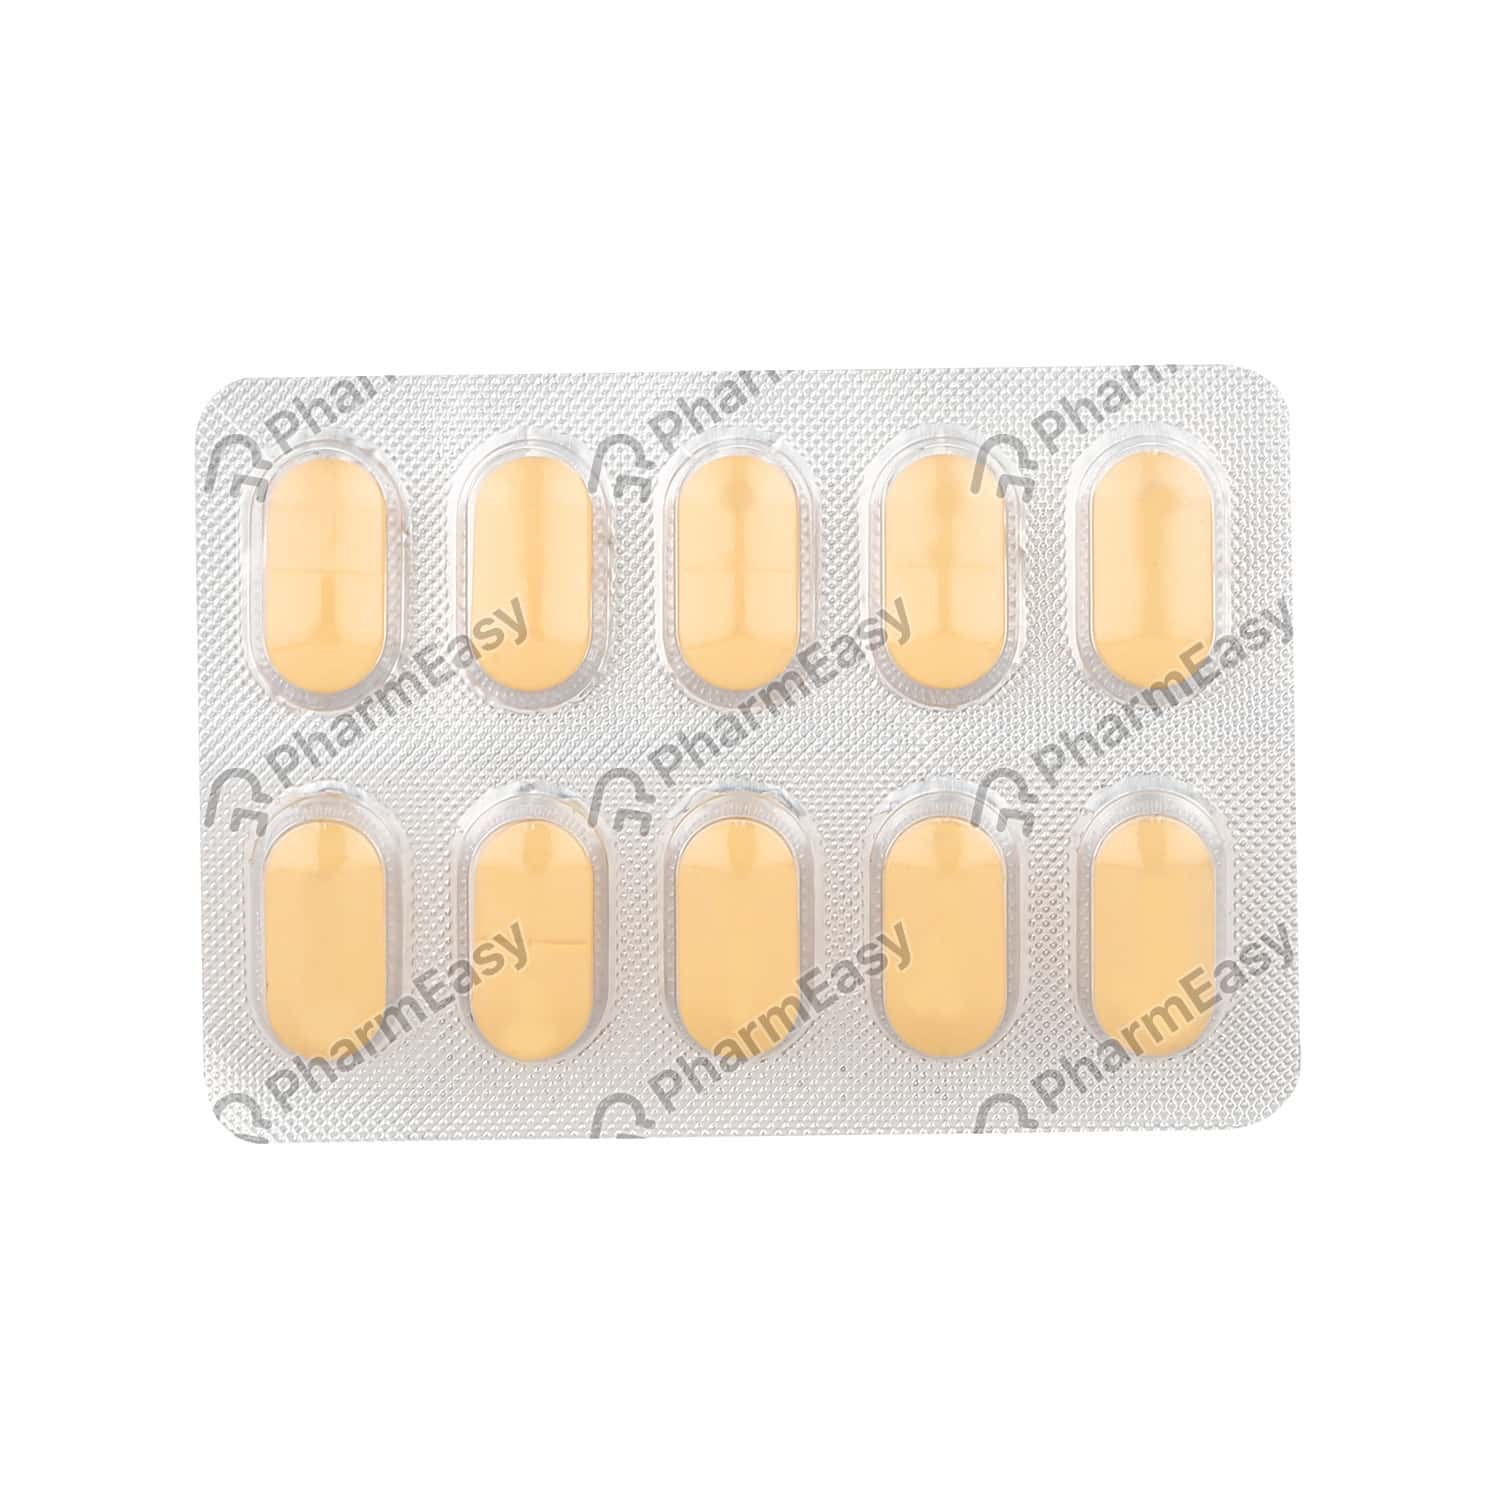 New Triclazone 40mg Tablet